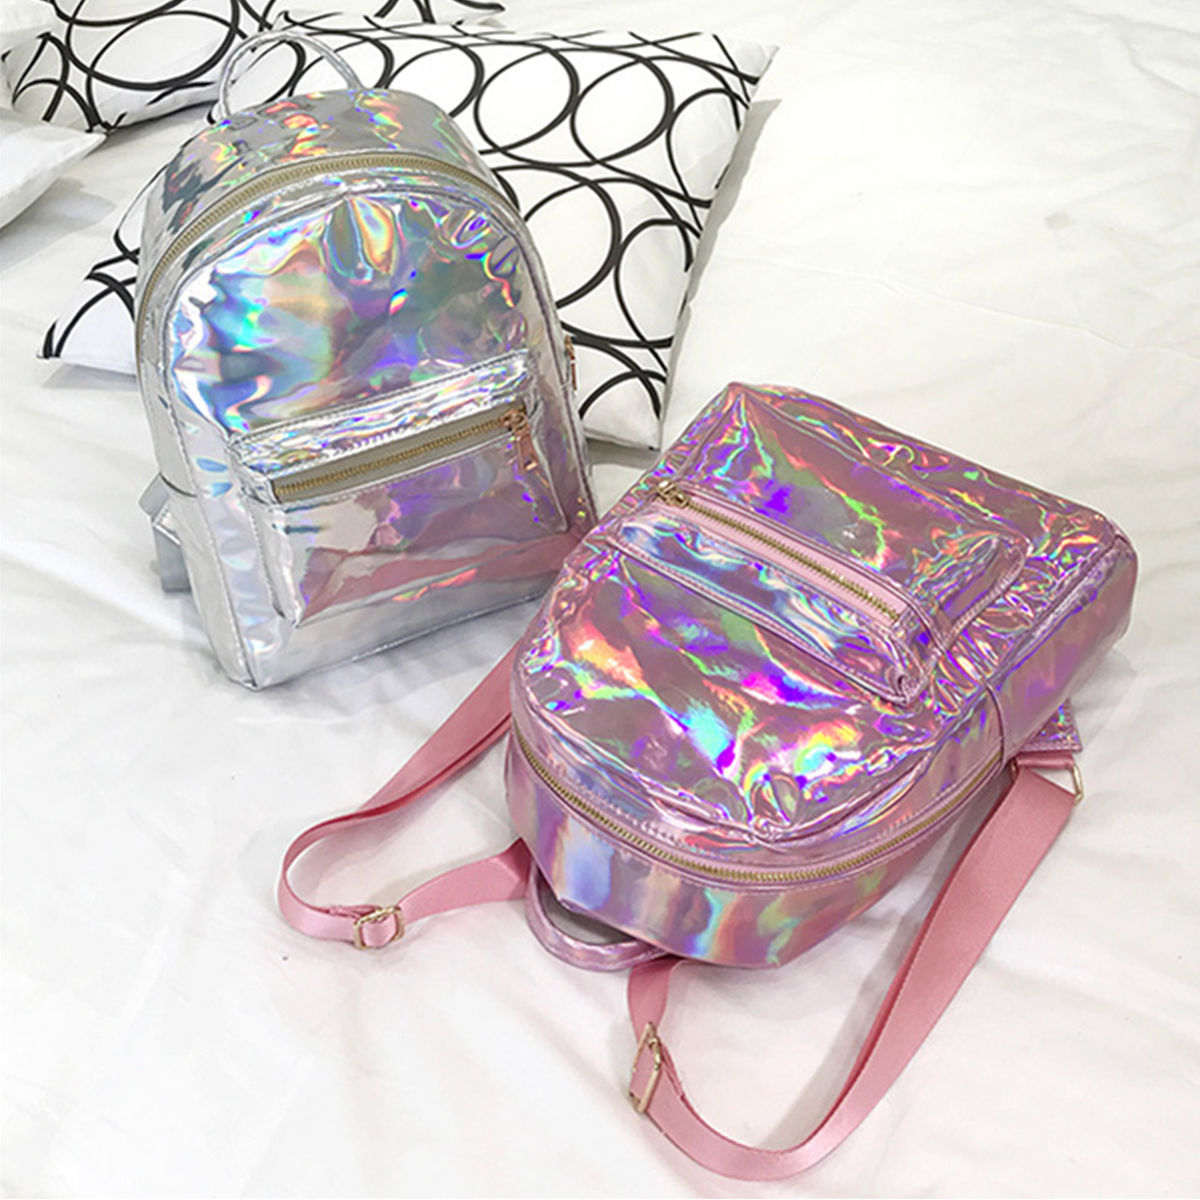 Hot Fashion Women Girl Laser Hologram Holographic Backpack Rucksack PU Leather Schoolbag Bags Pink Silver Gold